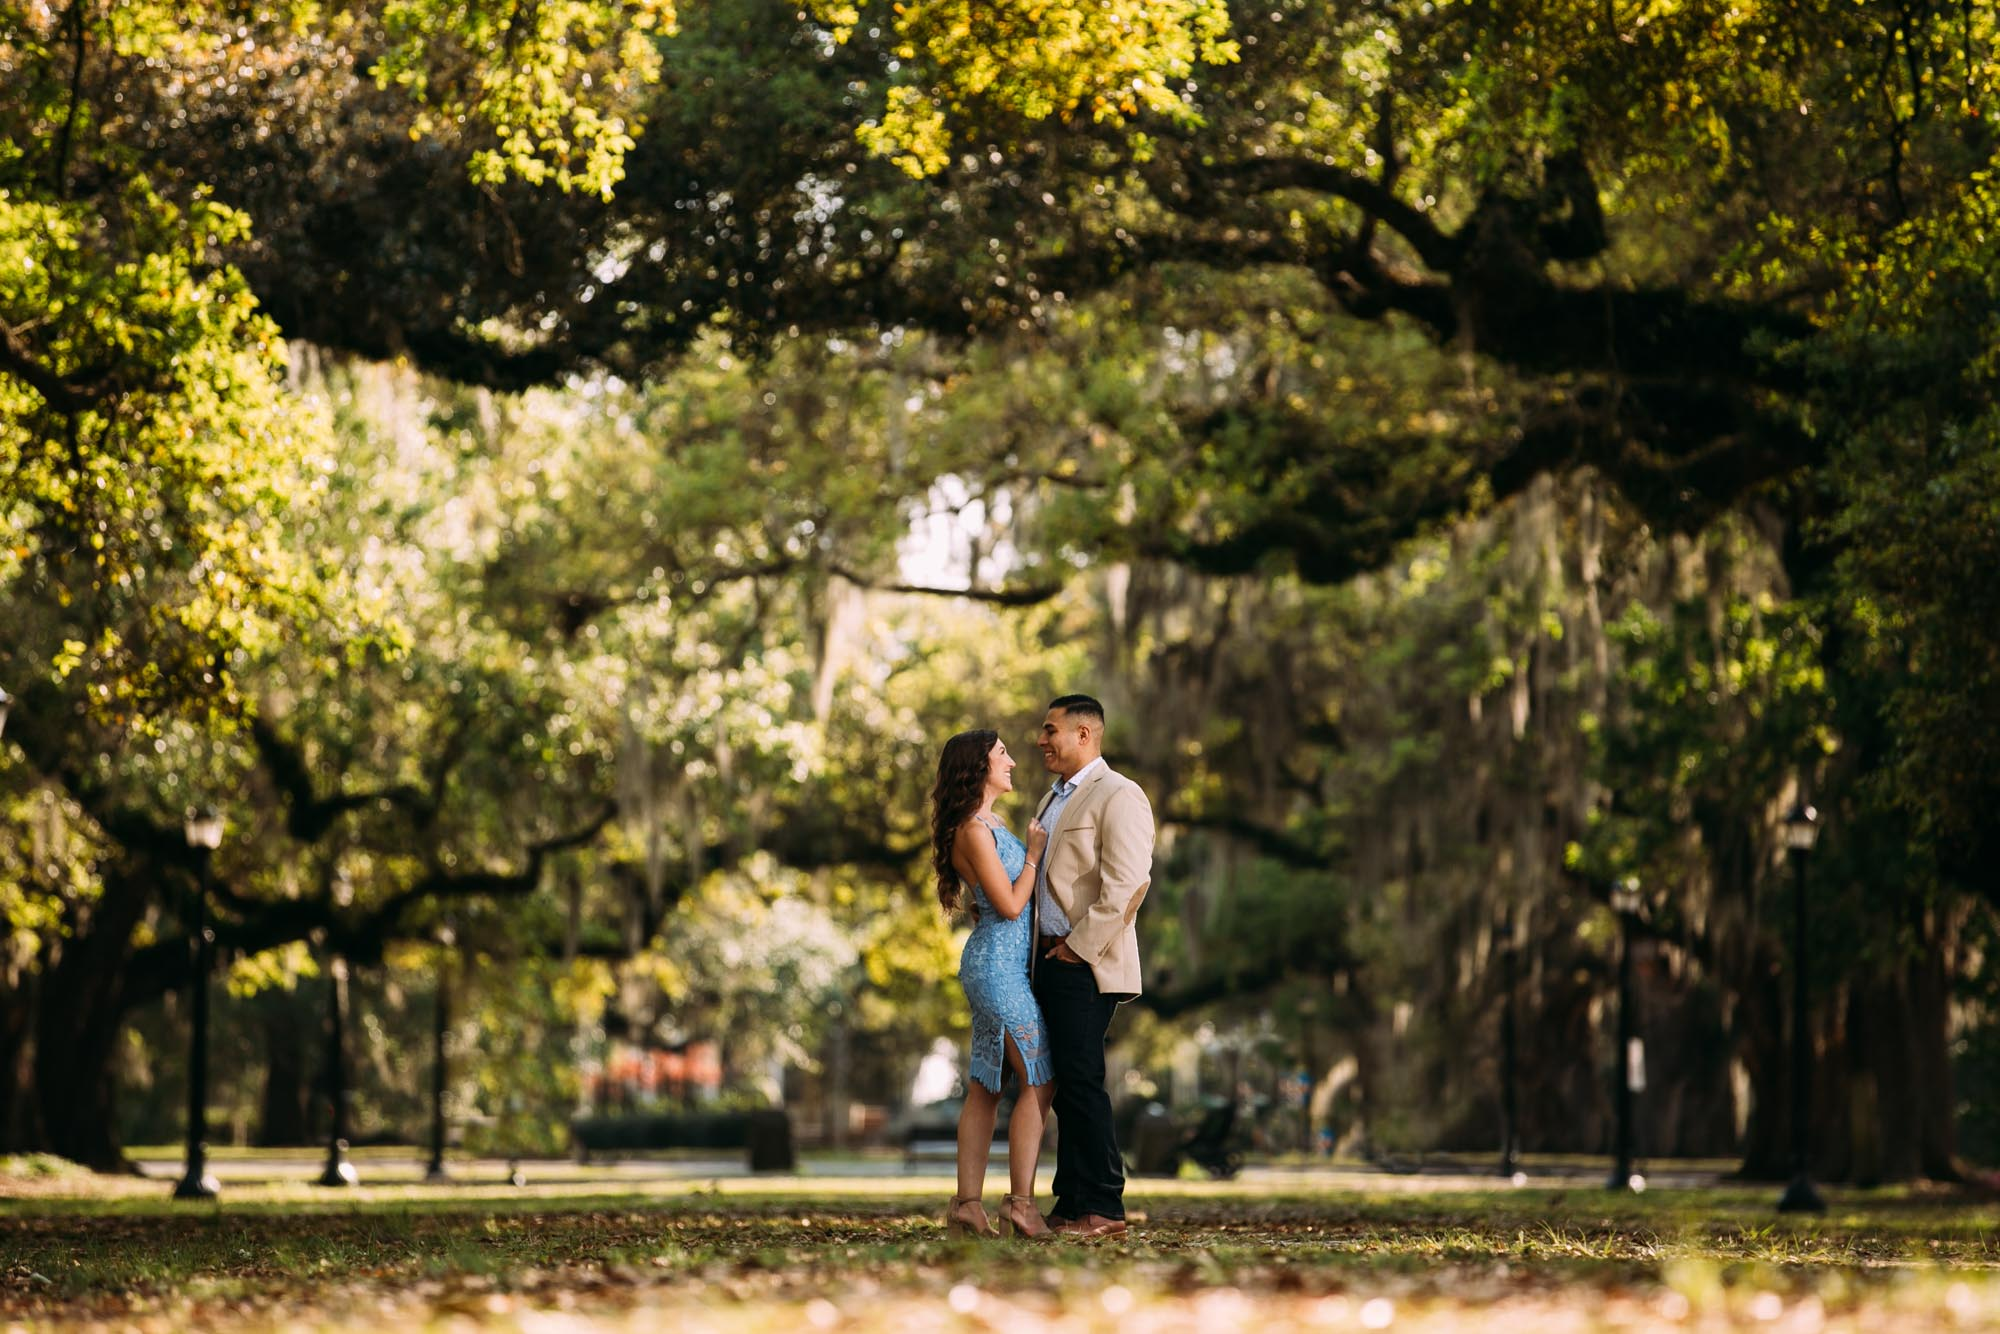 KF-French-Quarter-New-Orleans-Engagement-Photography-0021-2.jpg